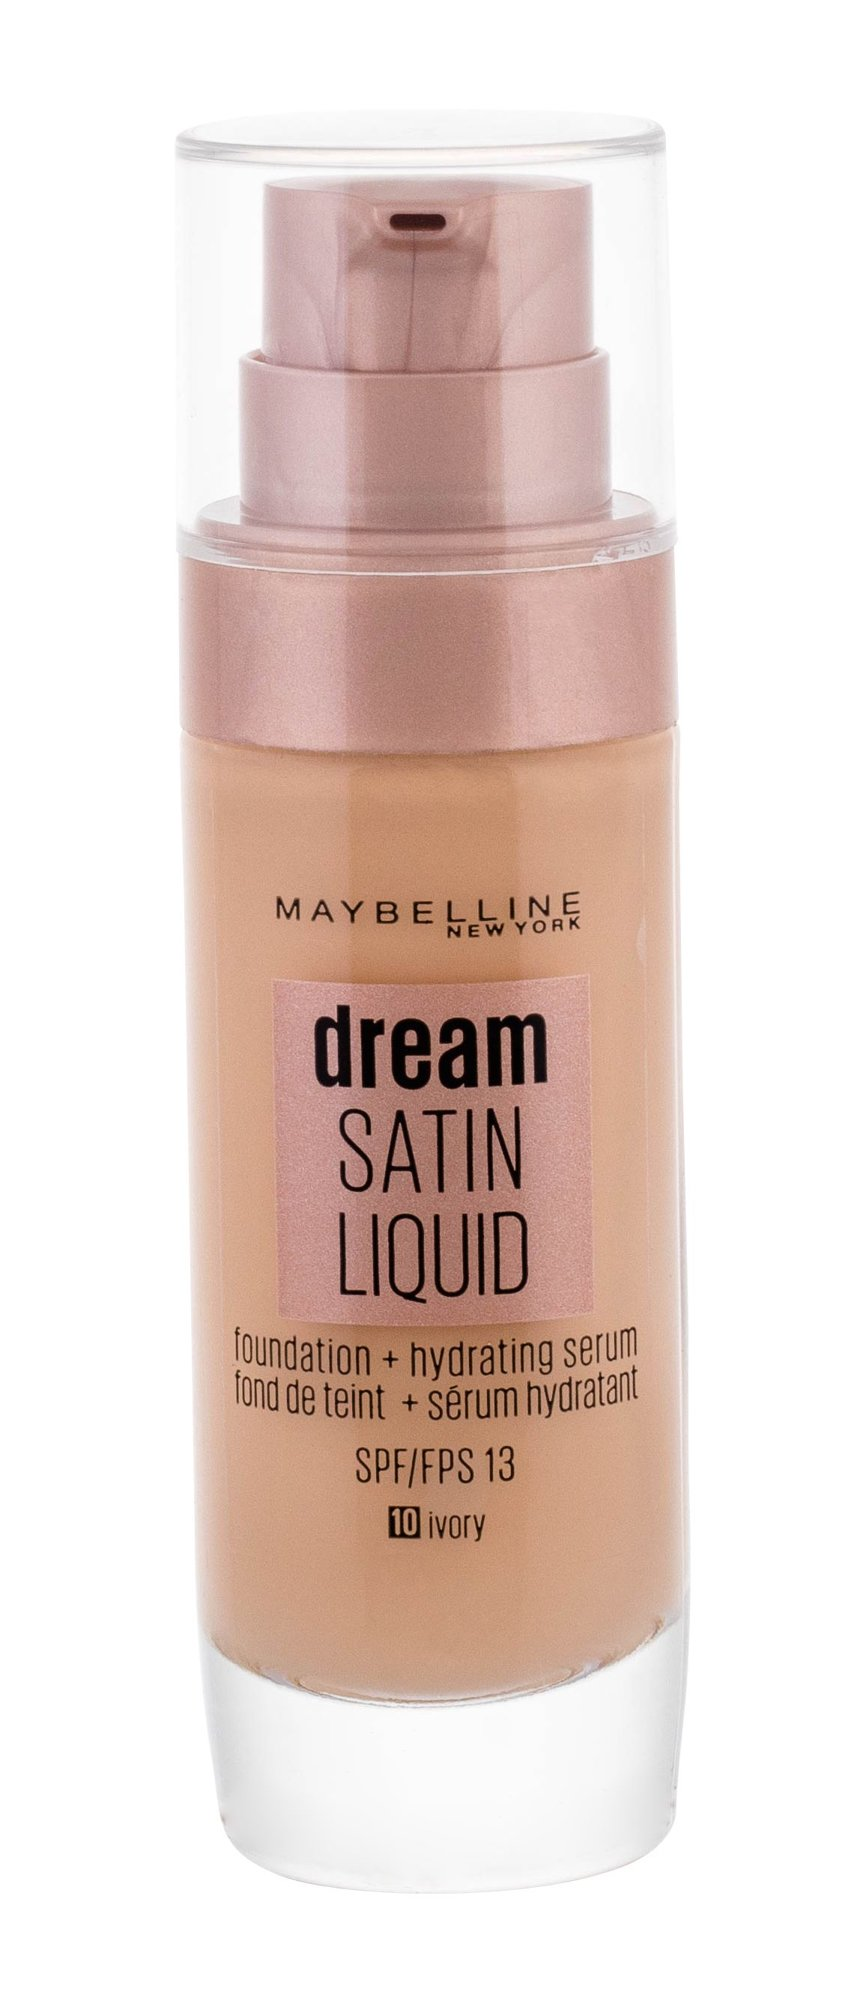 Maybelline Dream Satin Cosmetic 30ml 10 Ivory